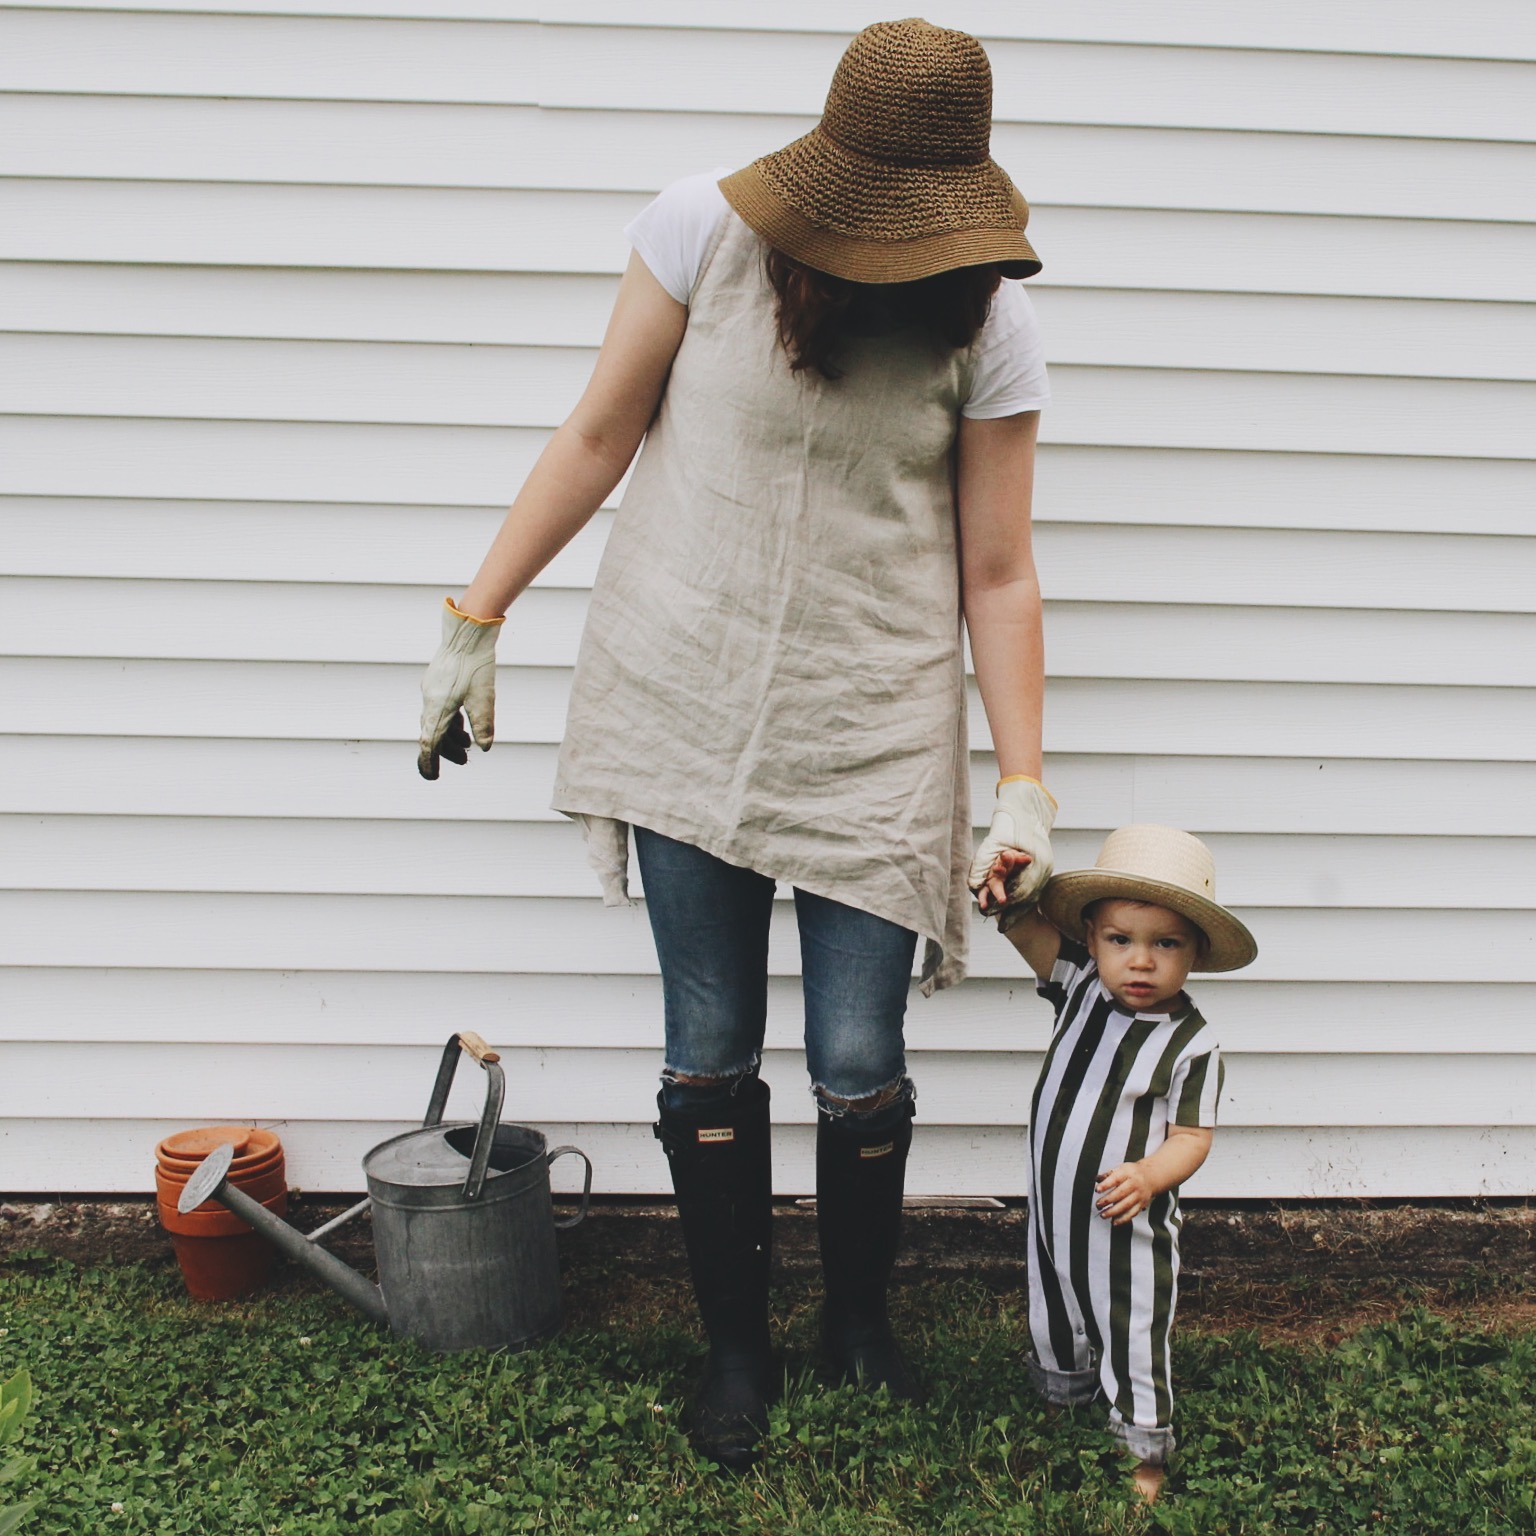 On Tad: Romper -  Tiny Cottons  ( @tinycottons ) c/o  Murray and Finn  ( @murrayandfinn ) // On Me: Sunhat - Urban Outfitters; Linen Tunic -  Under A Tin Roof  (@underatinroof); Wellies -  Hunter Boots